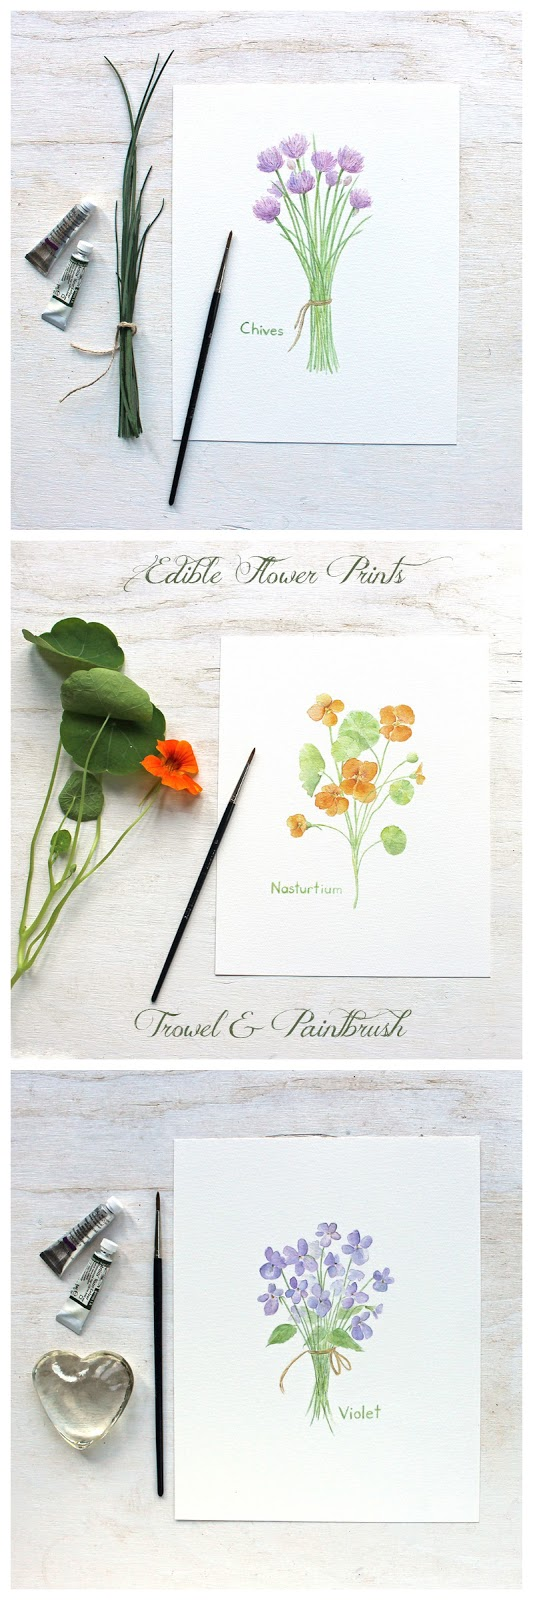 Botanical watercolor prints by Kathleen Maunder: chives, nasturtium and violet